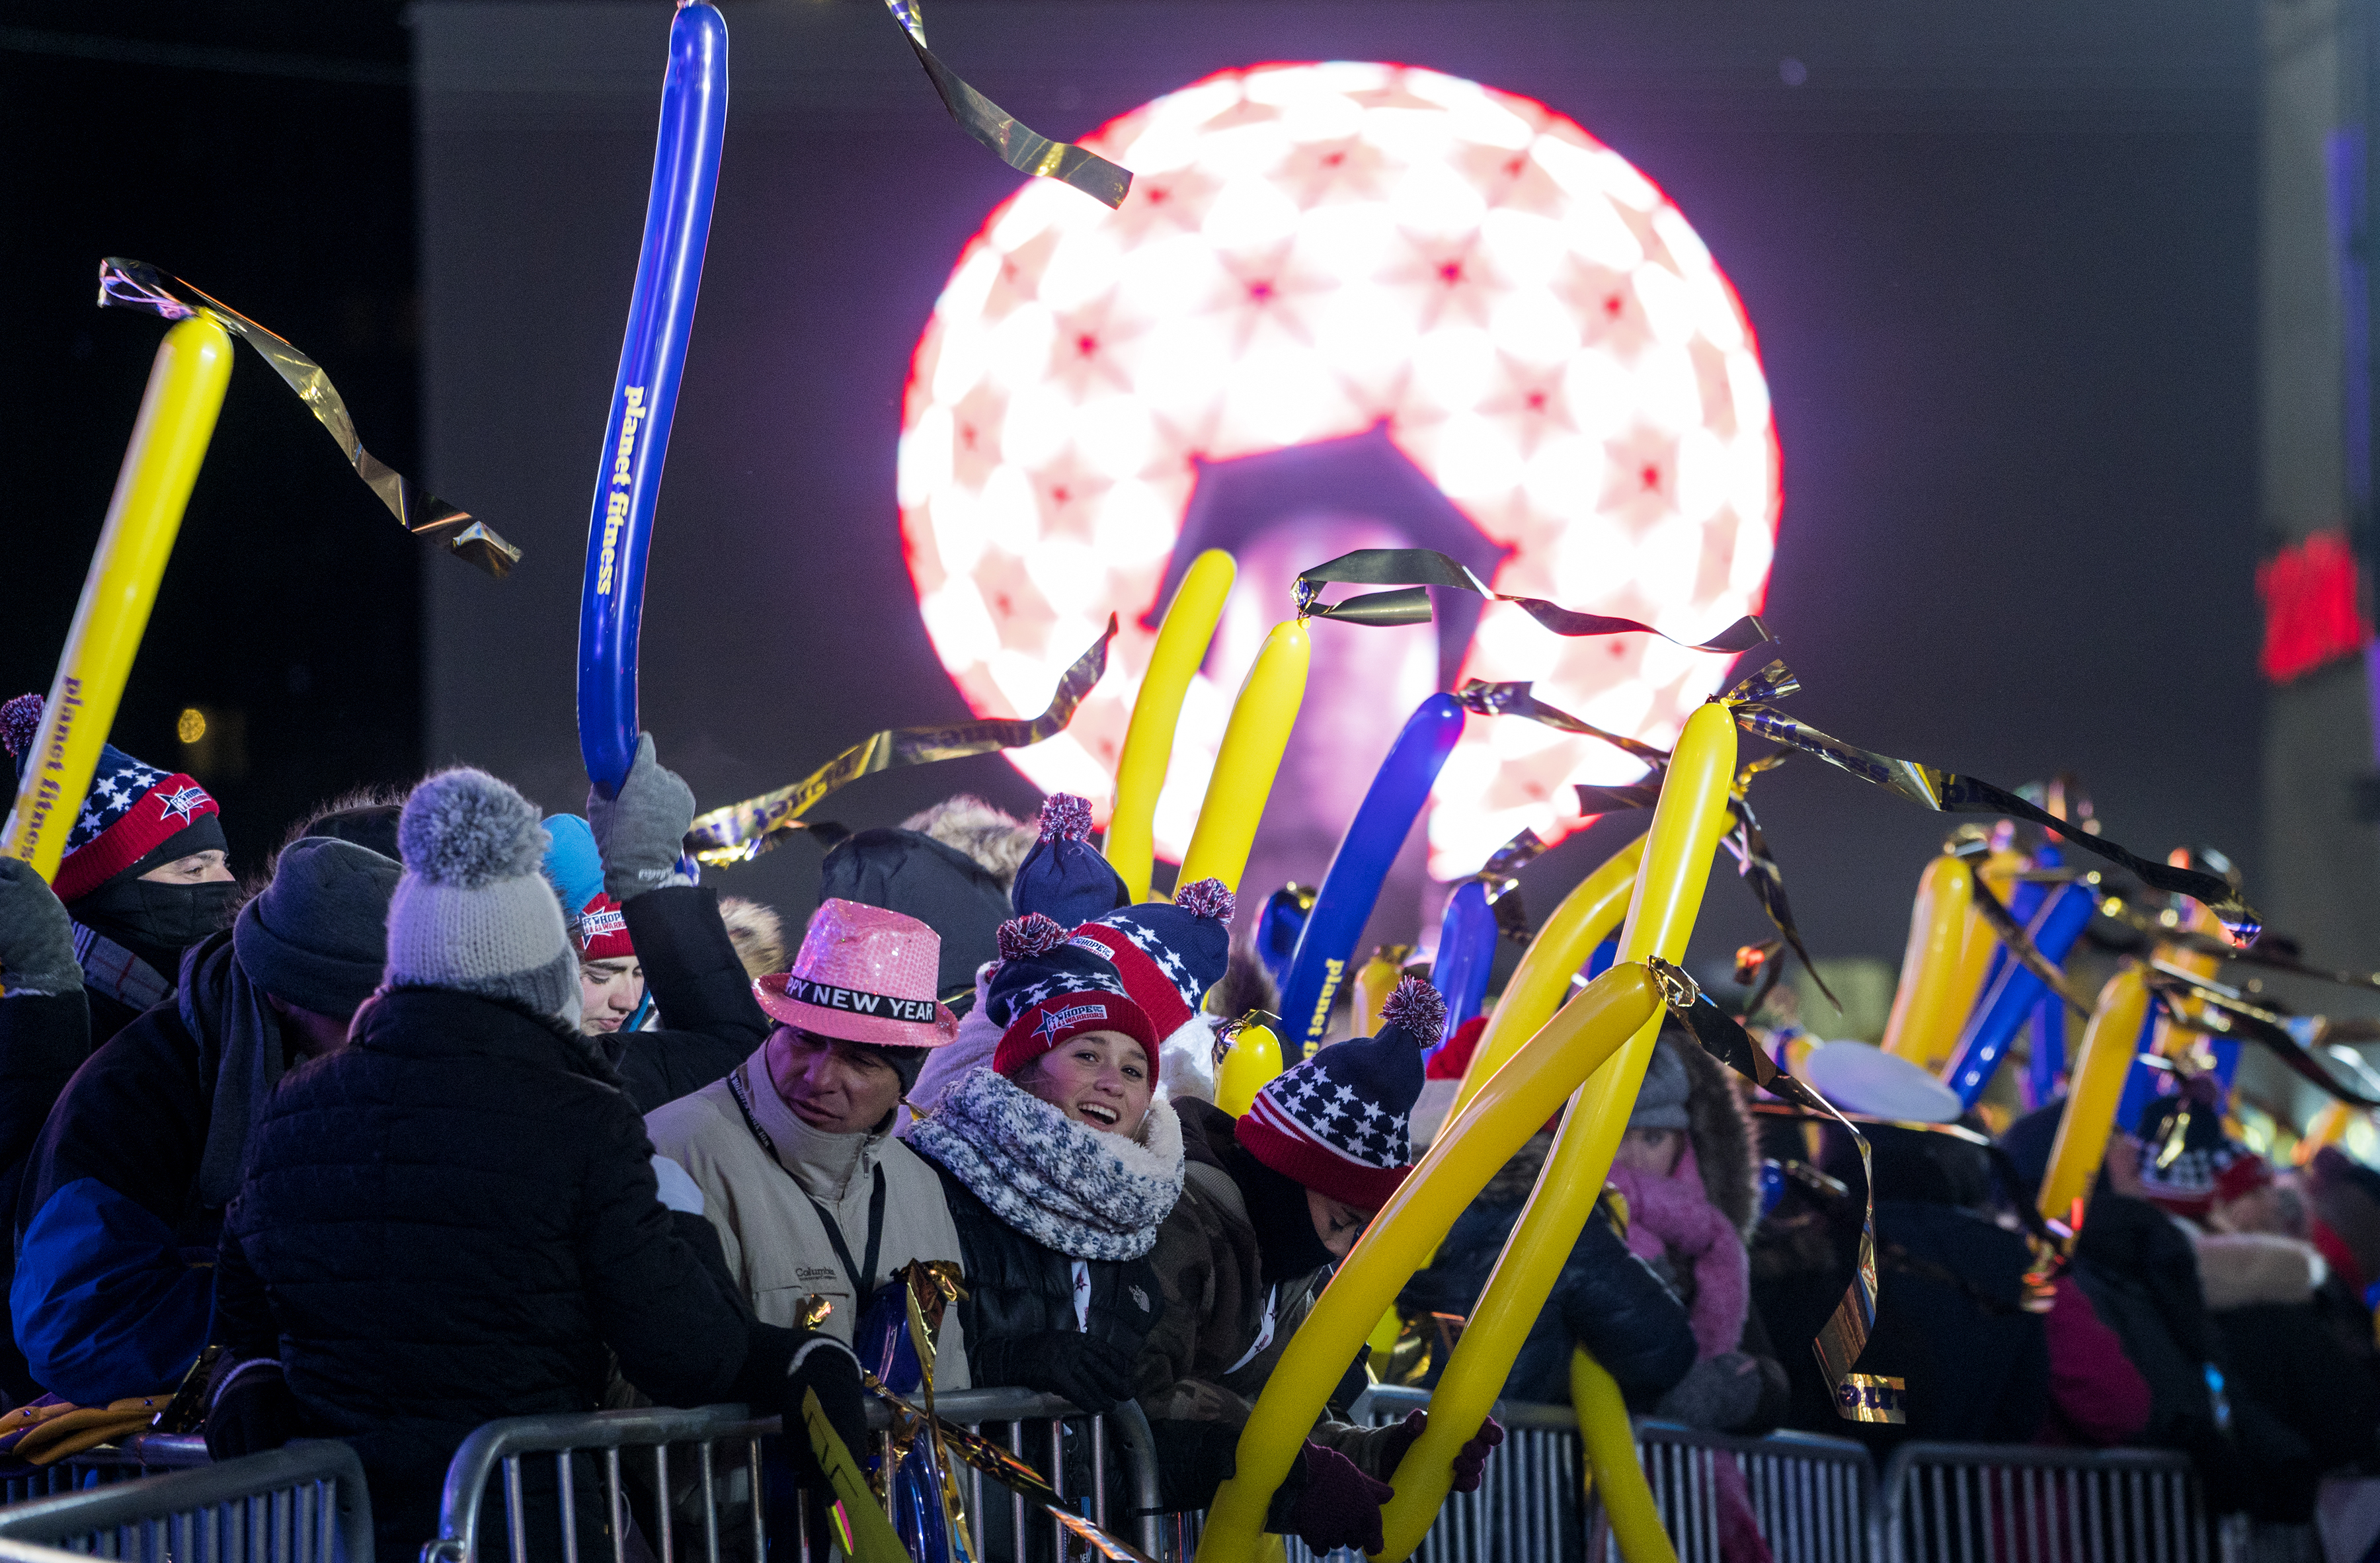 <div class='meta'><div class='origin-logo' data-origin='AP'></div><span class='caption-text' data-credit='AP'>With a television image of the ceremonial ball in the background, revelers gather on Times Square in New York, Sunday, Dec. 31, 2017.</span></div>